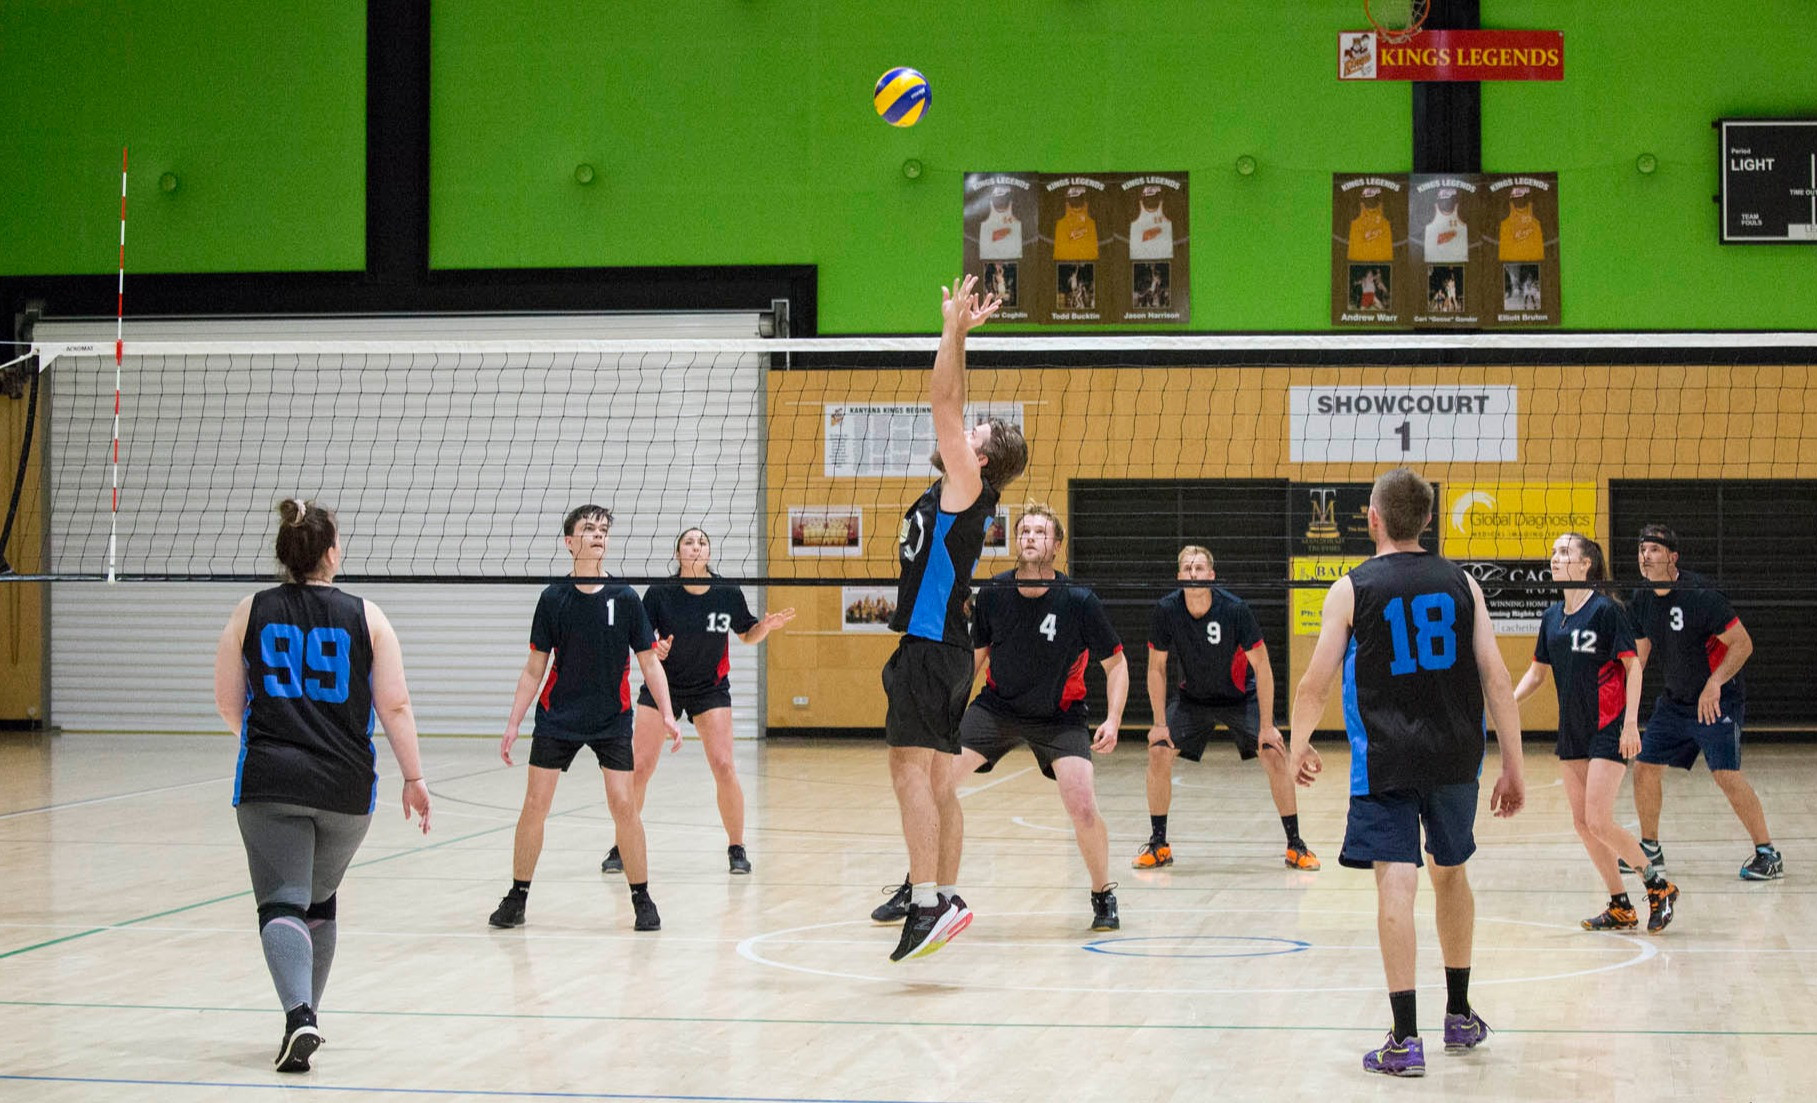 Mixed Teams Competition (Apr-Sep 2021)